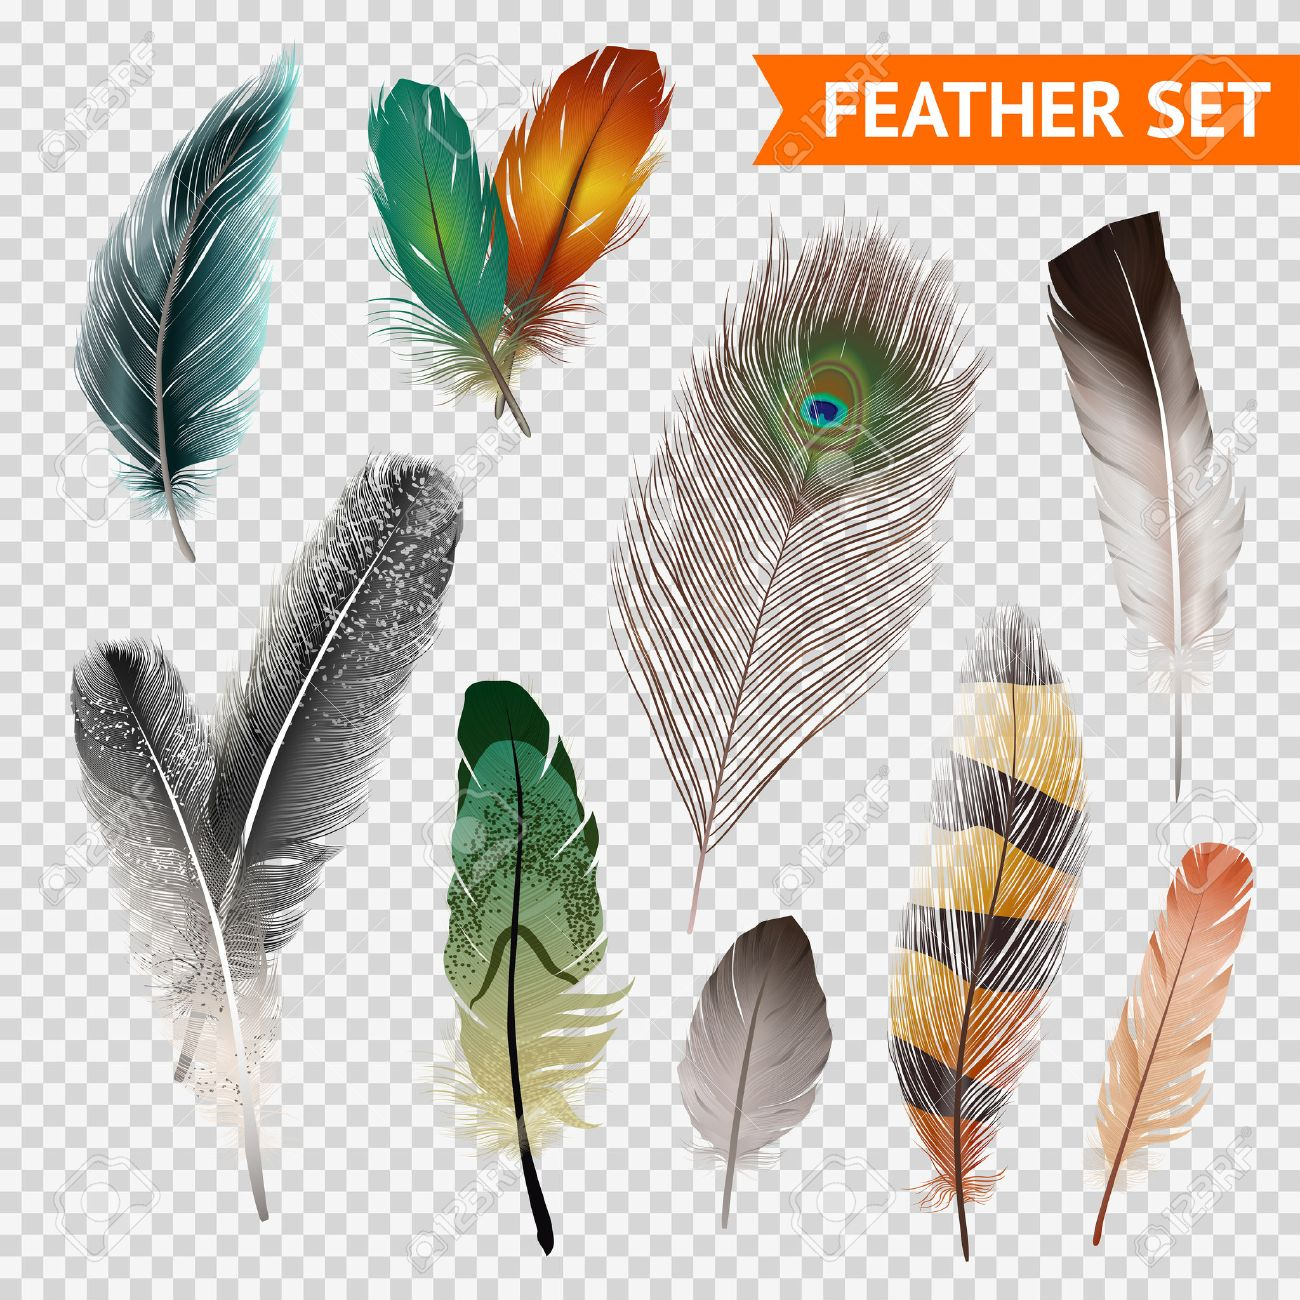 Bird feathers realistic set on transparent background isolated vector illustration - 53864489